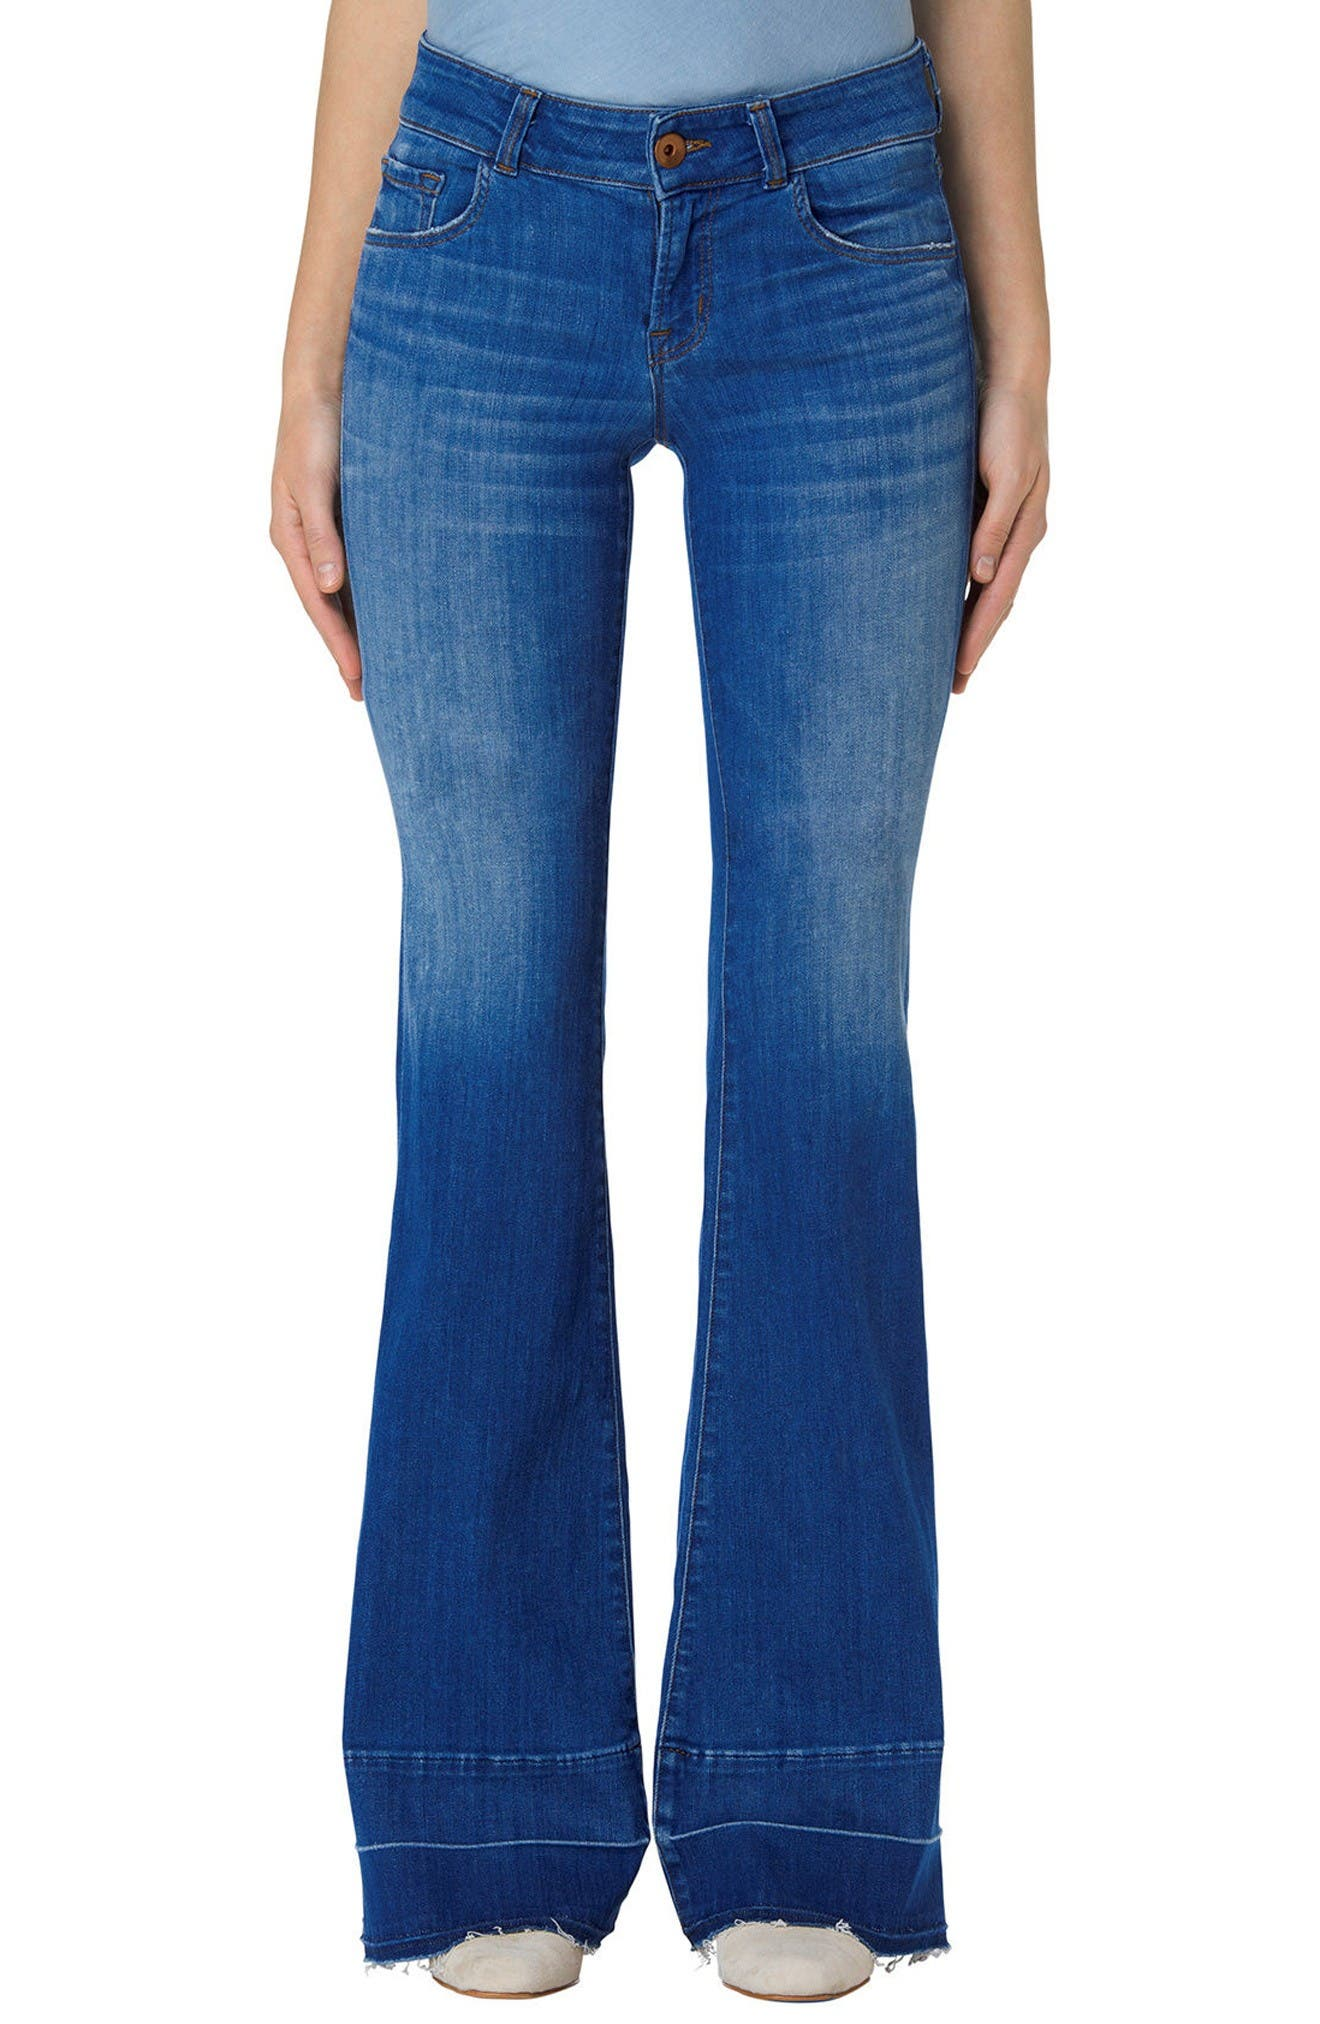 Alternate Image 1 Selected - J Brand Love Story Flare Jeans (Angelic)